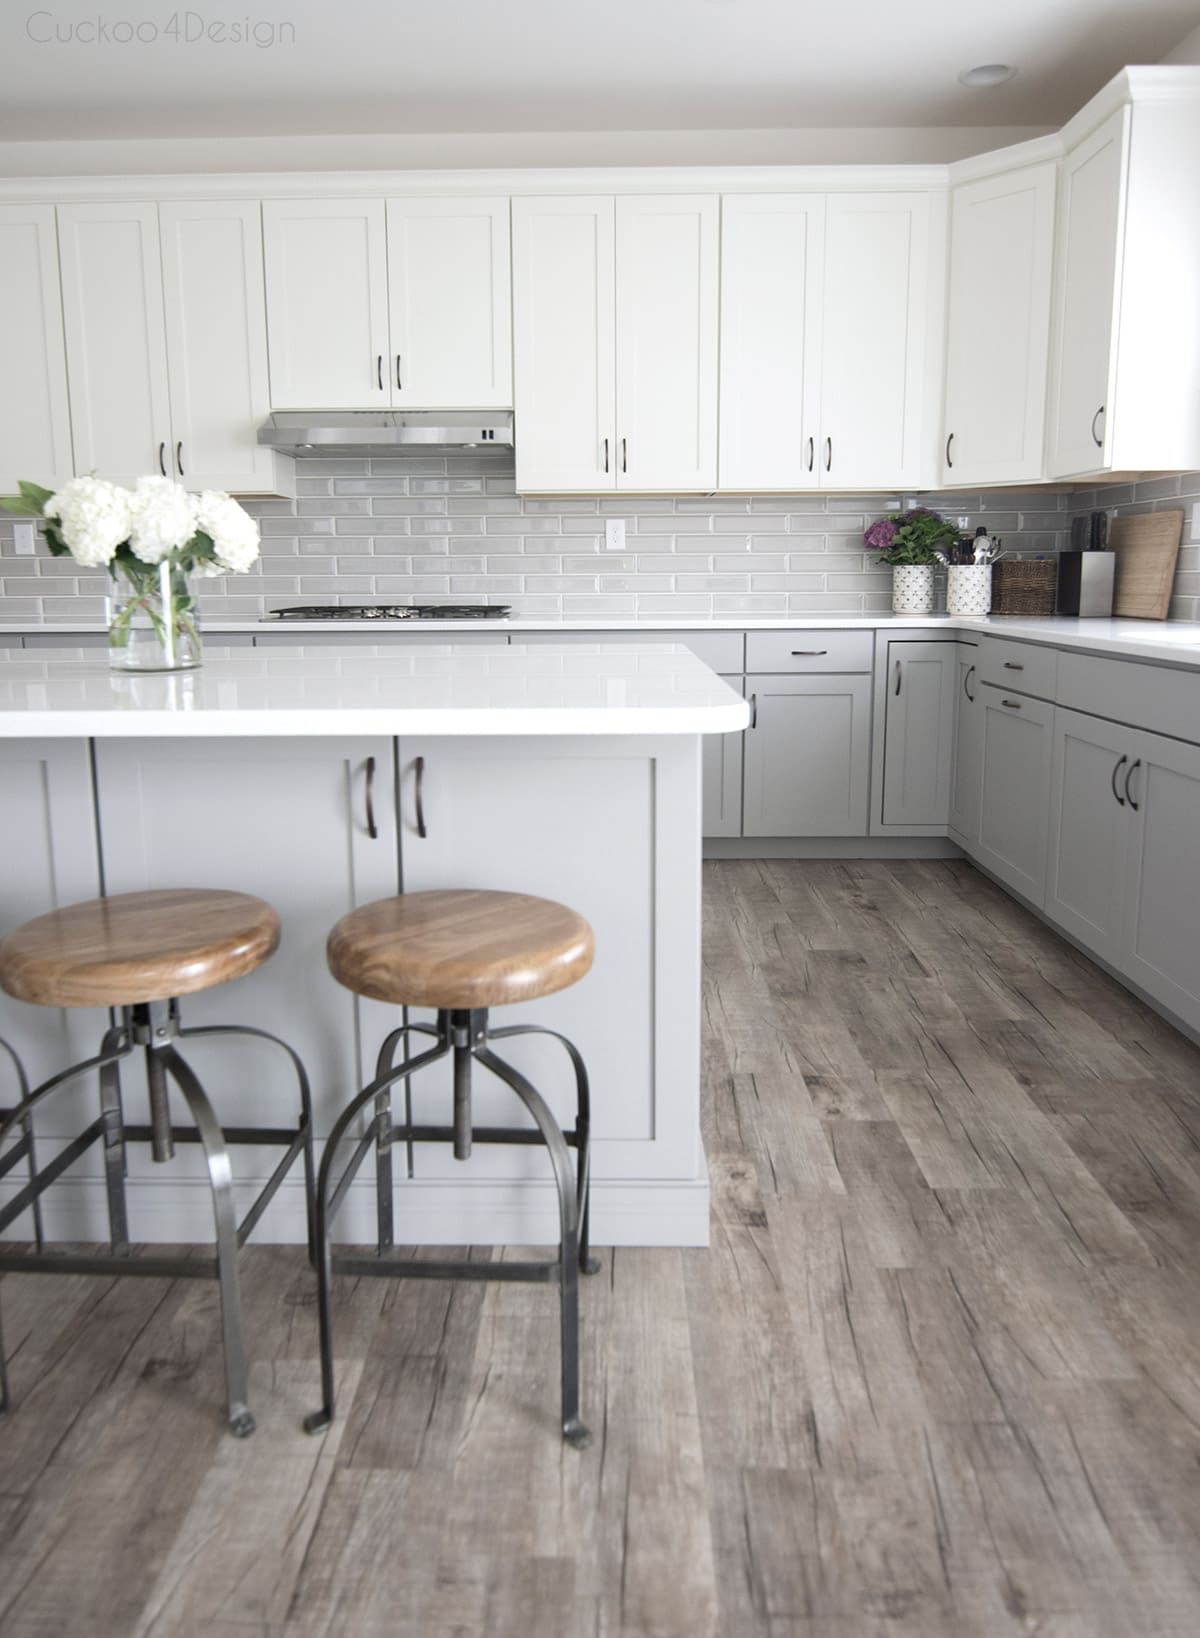 beautiful light grey kitchen cabinets with white upper cabinets and white quartz countertops